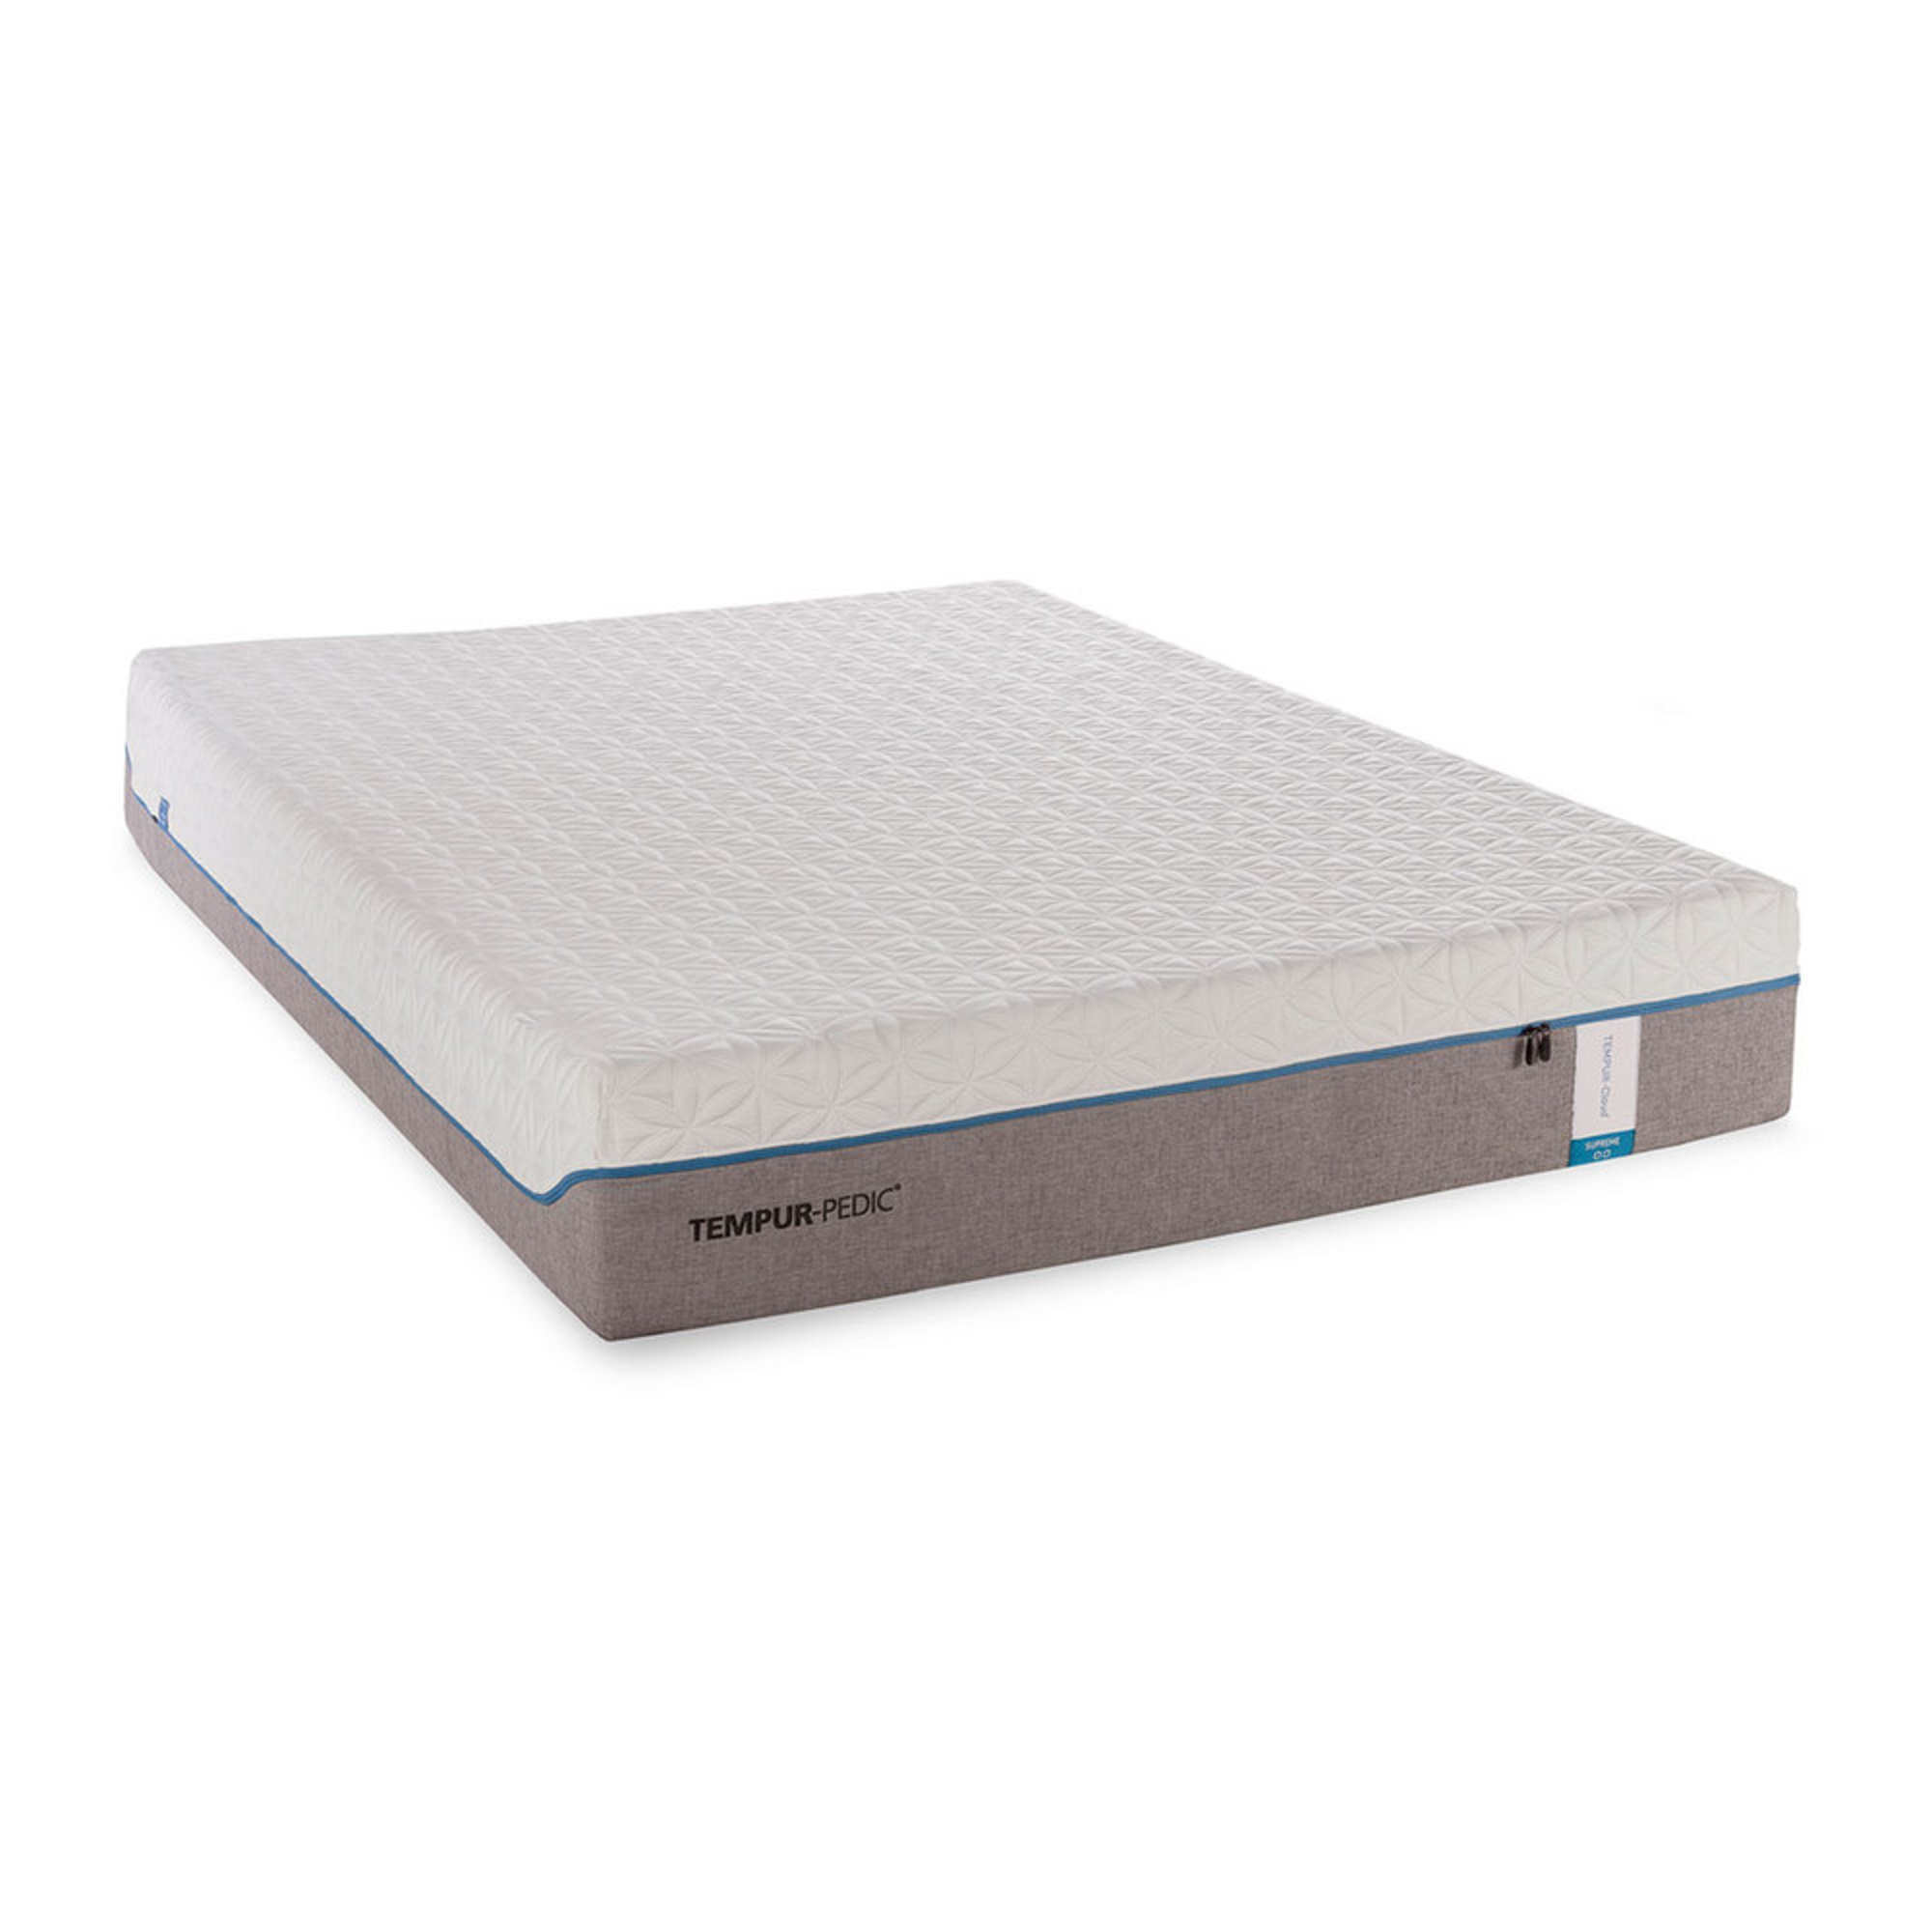 Tempur Pedic Tempur Cloud Supreme Mattress Twin Long Mattresses For The Home Shop Your